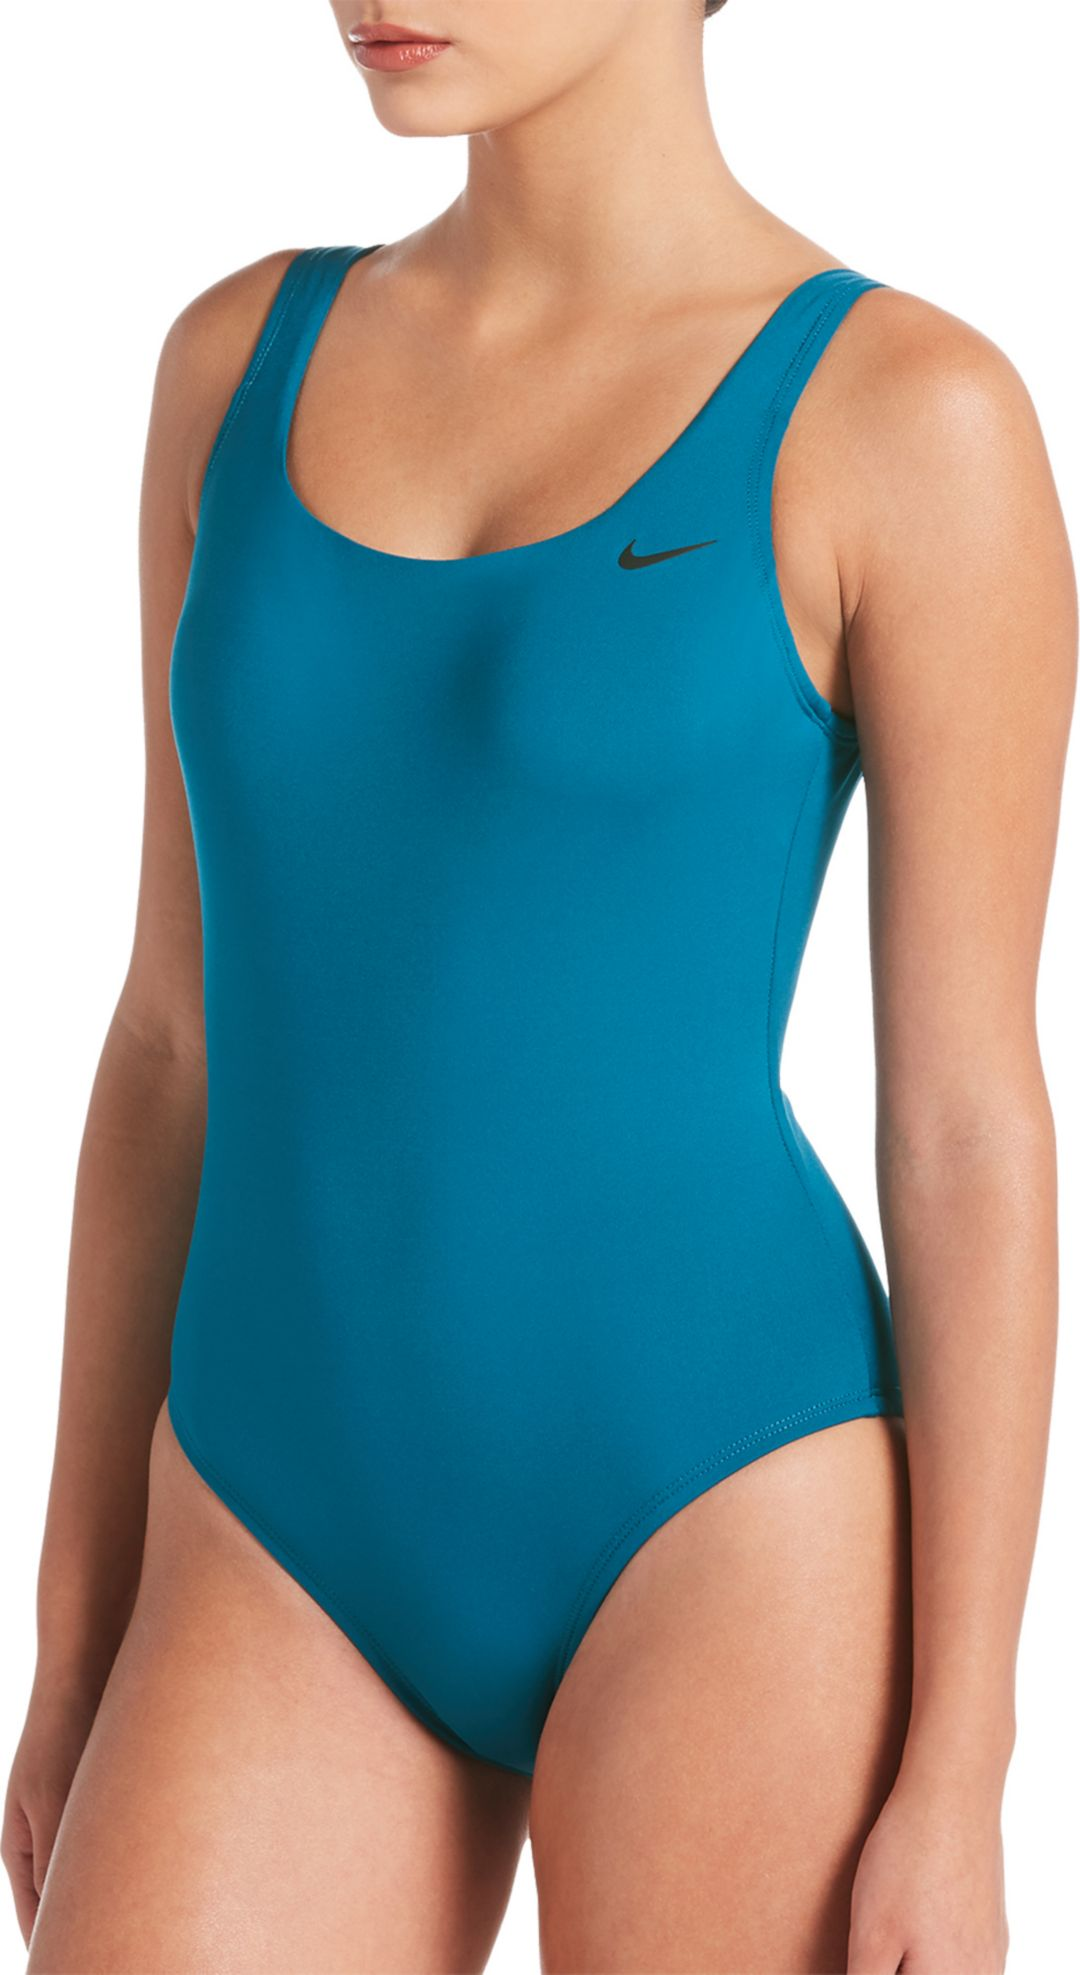 2391c0f6fd3 Nike Women's Solid U-Back One Piece Swimsuit | DICK'S Sporting Goods